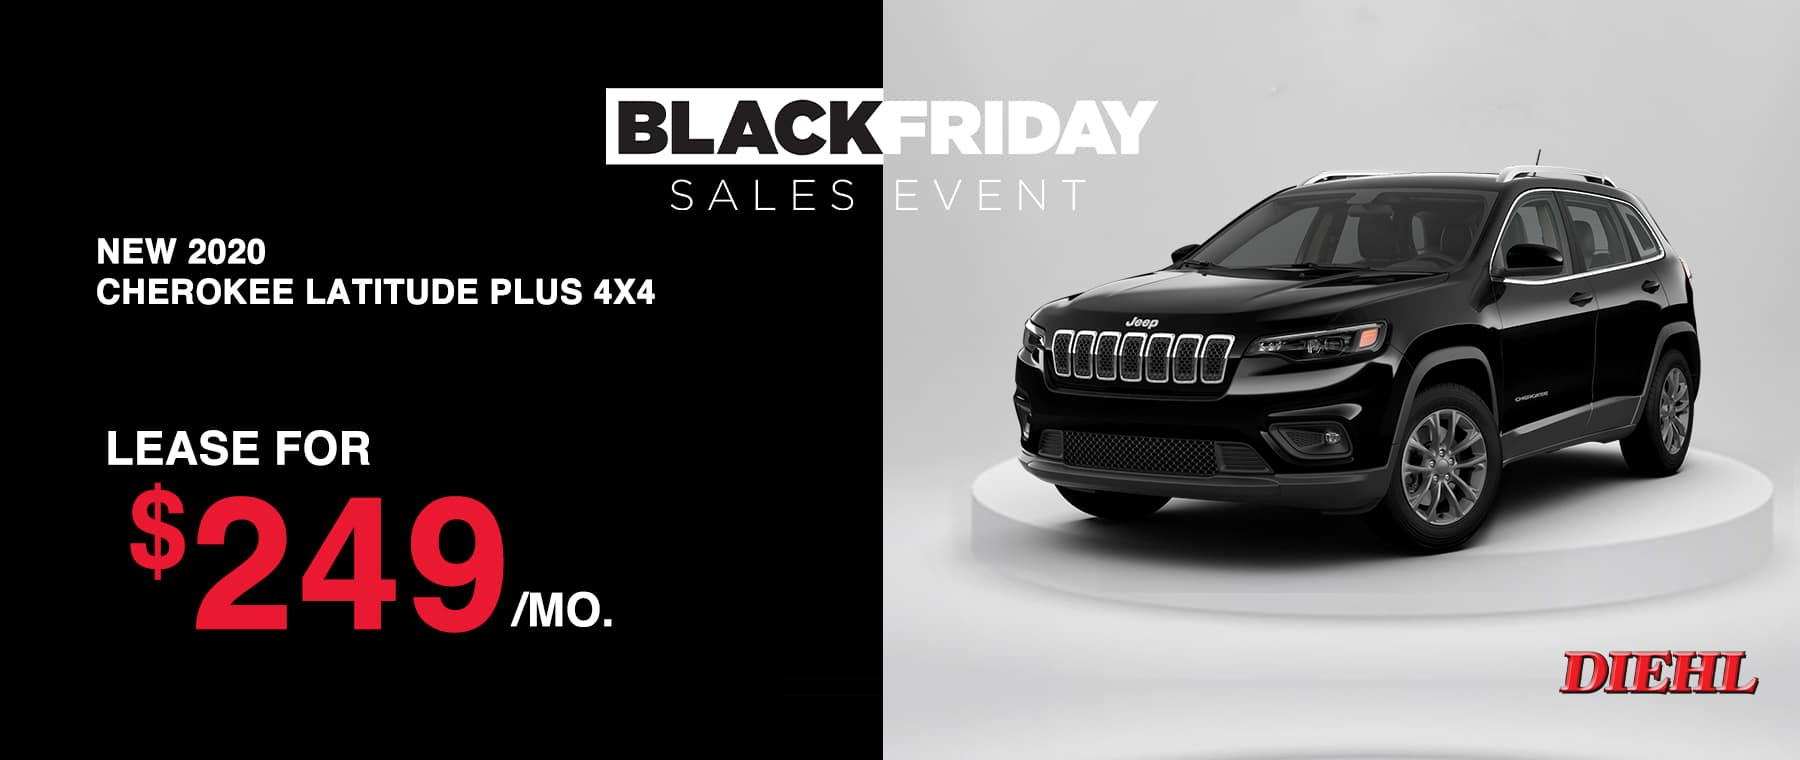 J201010-JEEPCHEROKEELATITUDEPLUS Diehl Robinson Chrysler dodge jeep ram Black Friday sales event lease special new vehicle special sale year end savings employee pricing plus